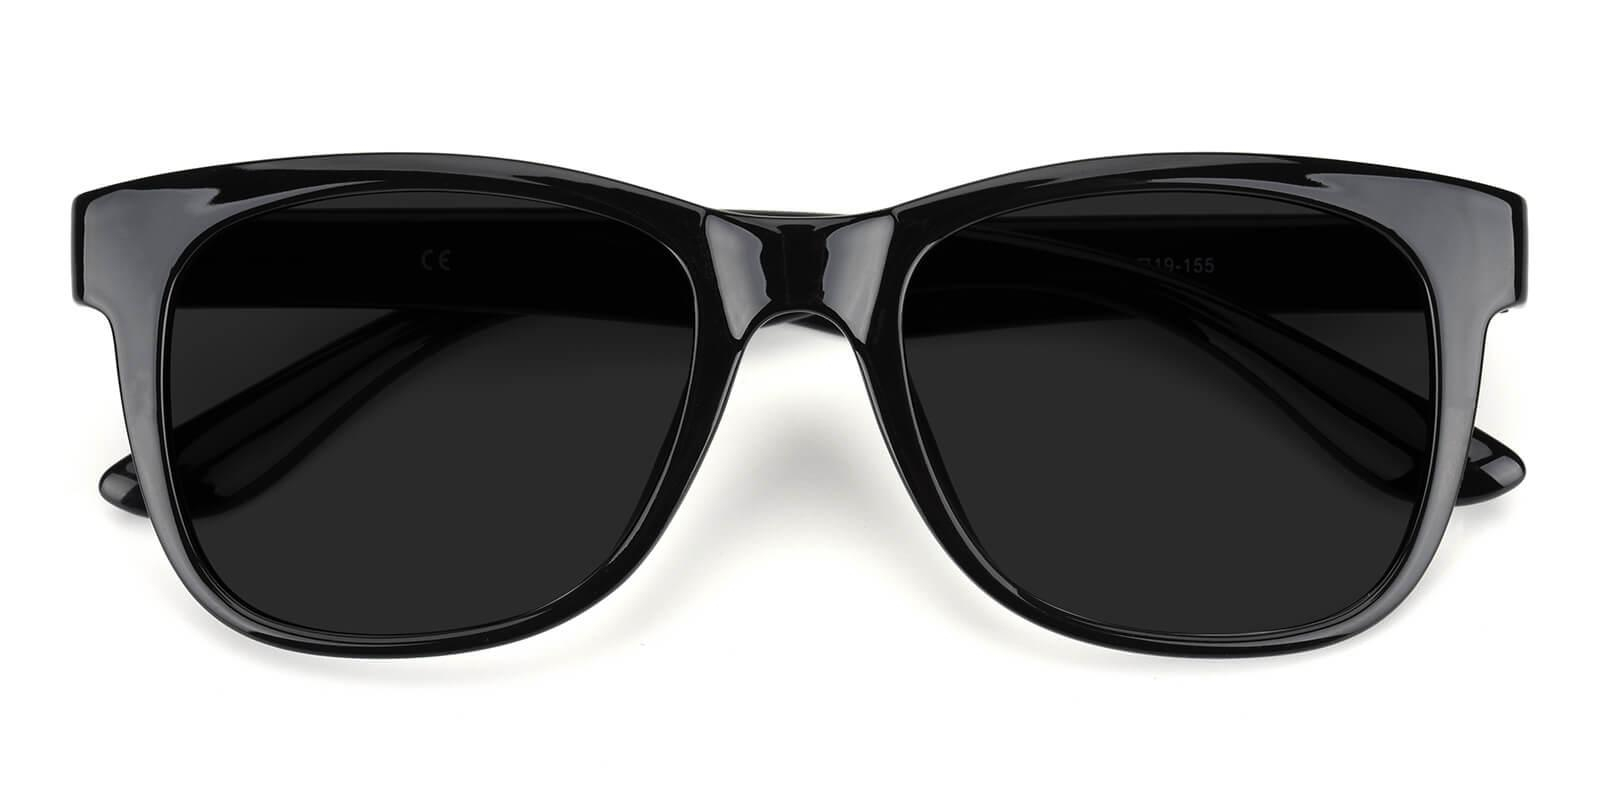 Tracly-Black-Square / Cat-TR-Sunglasses-detail